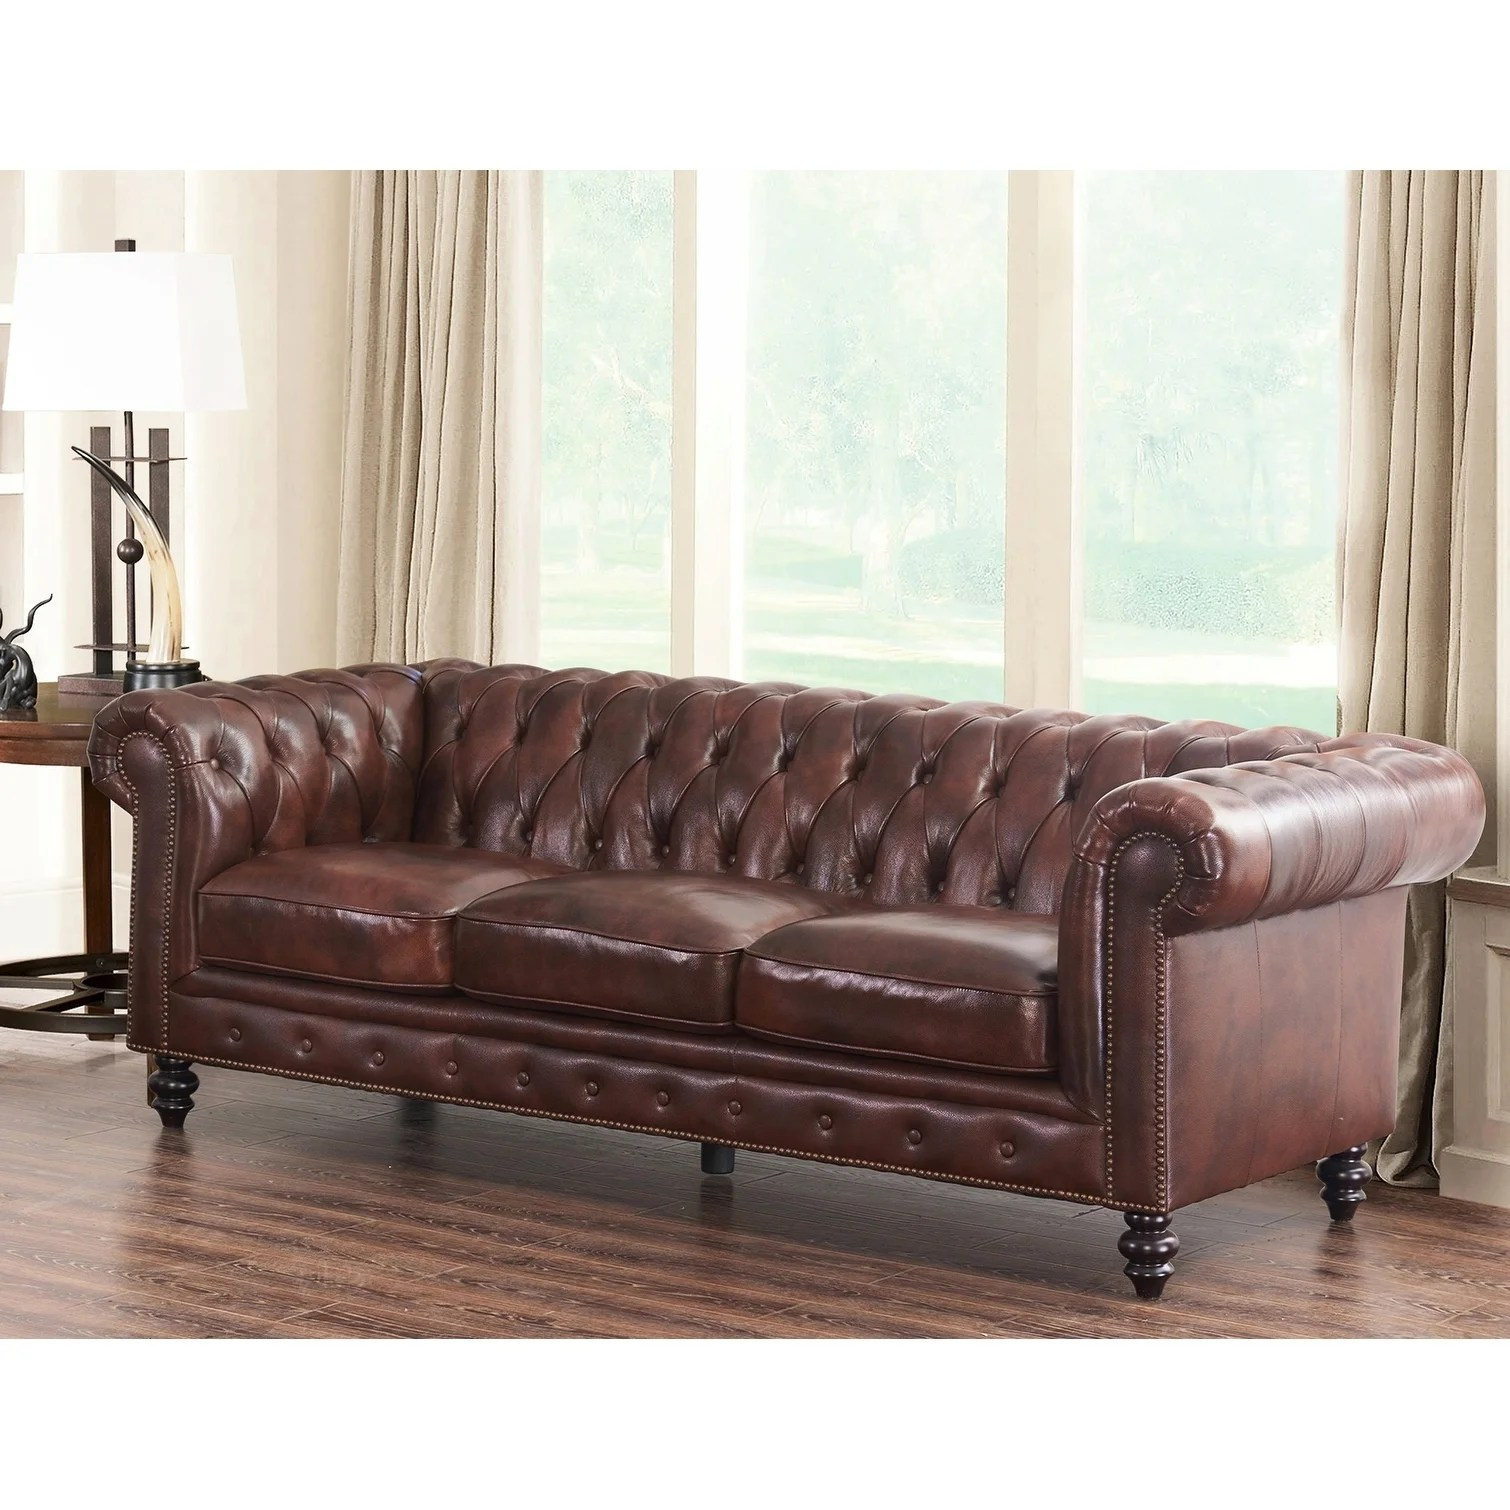 Brown Real Leather Couch Abbyson Grand Chesterfield Brown Top Grain Leather Sofa